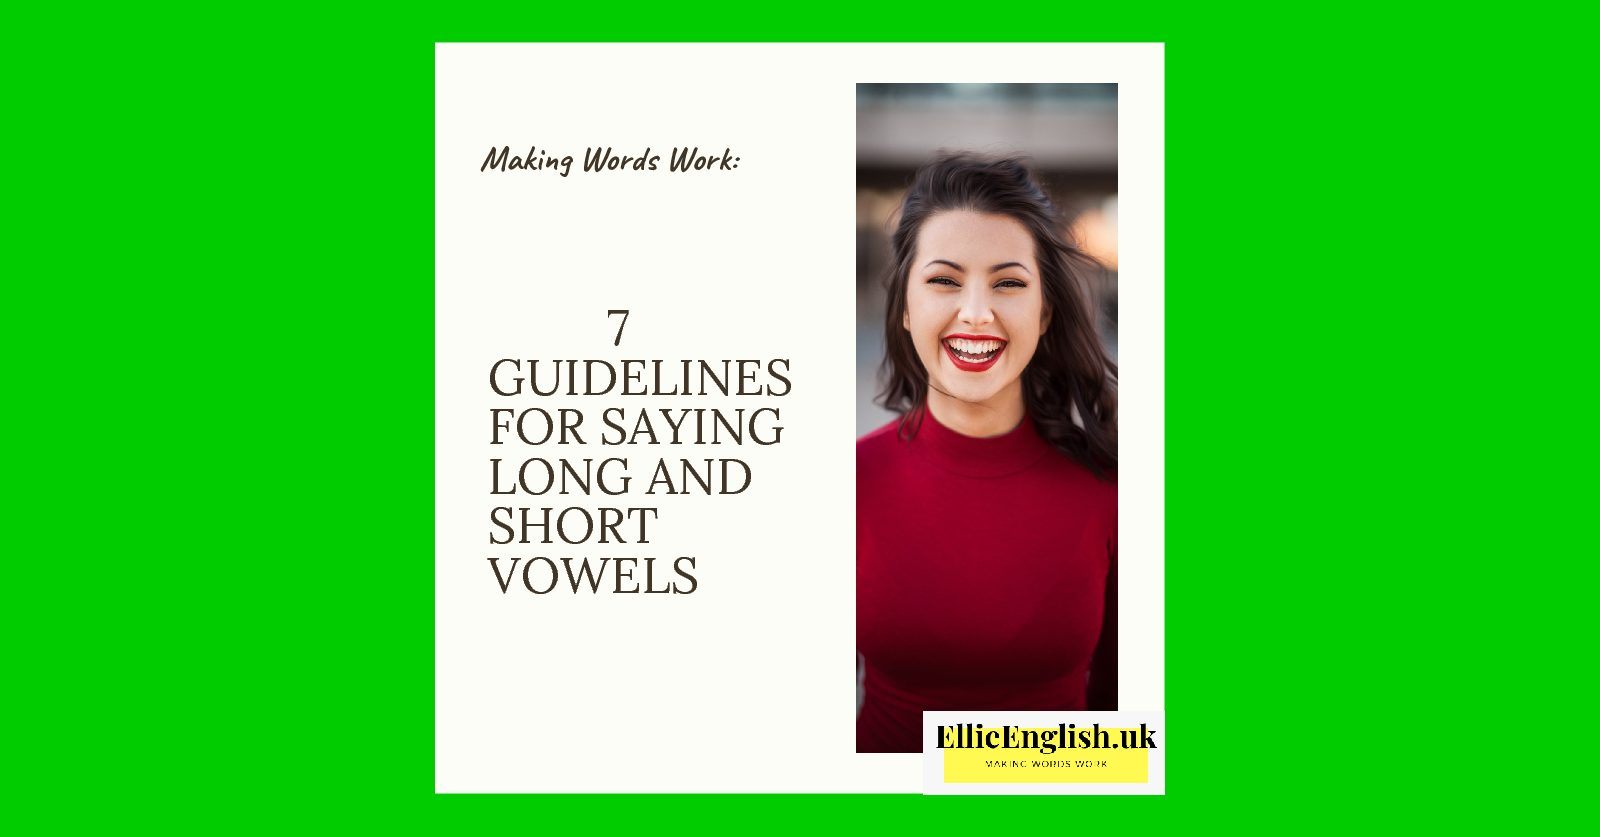 7 Guidelines for saying long and short vowels